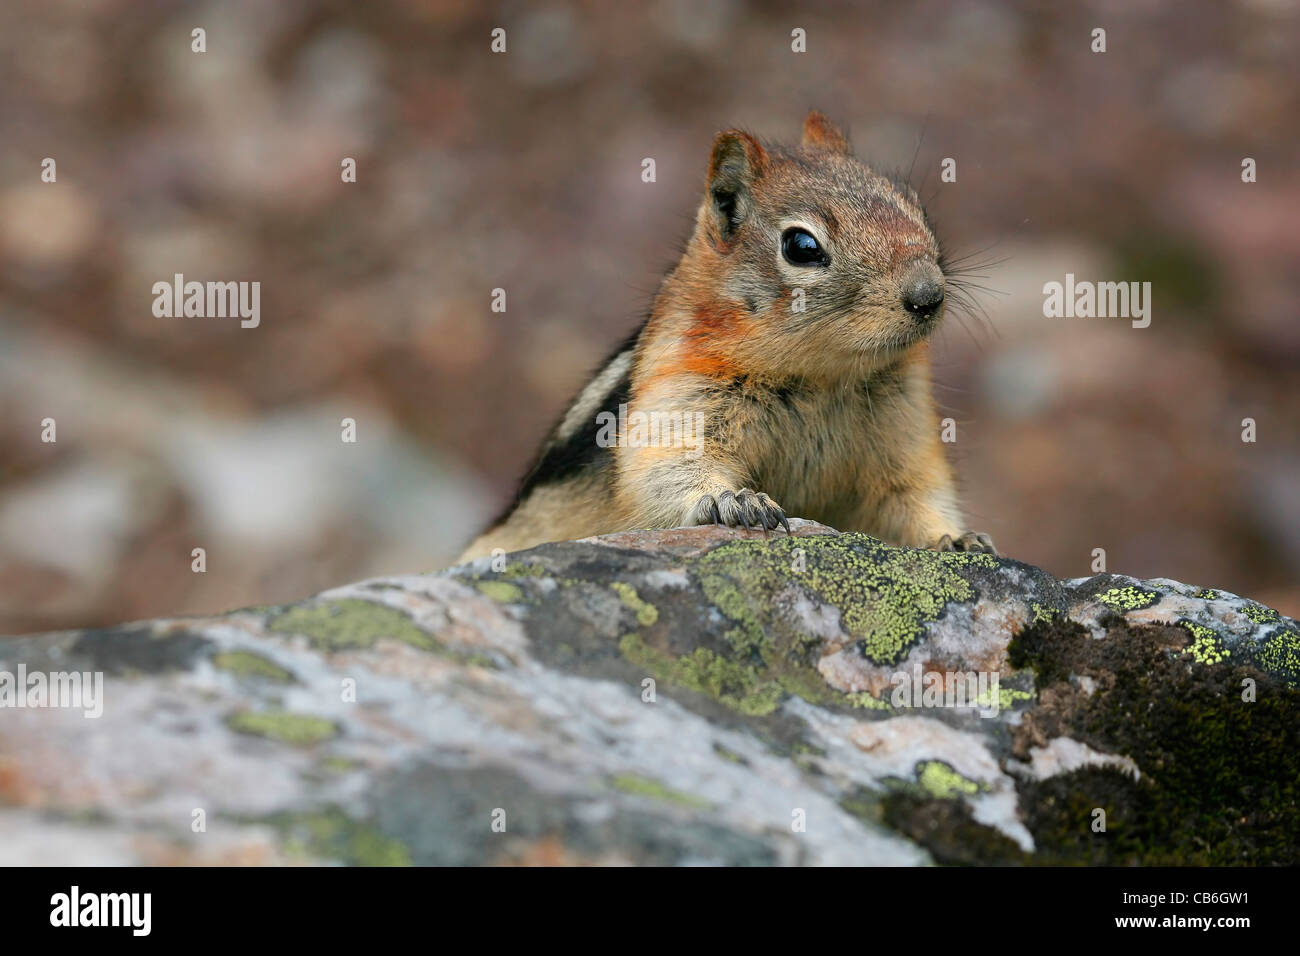 Golden Mantled Ground Squirrel Spermophilus lateralis - Stock Image